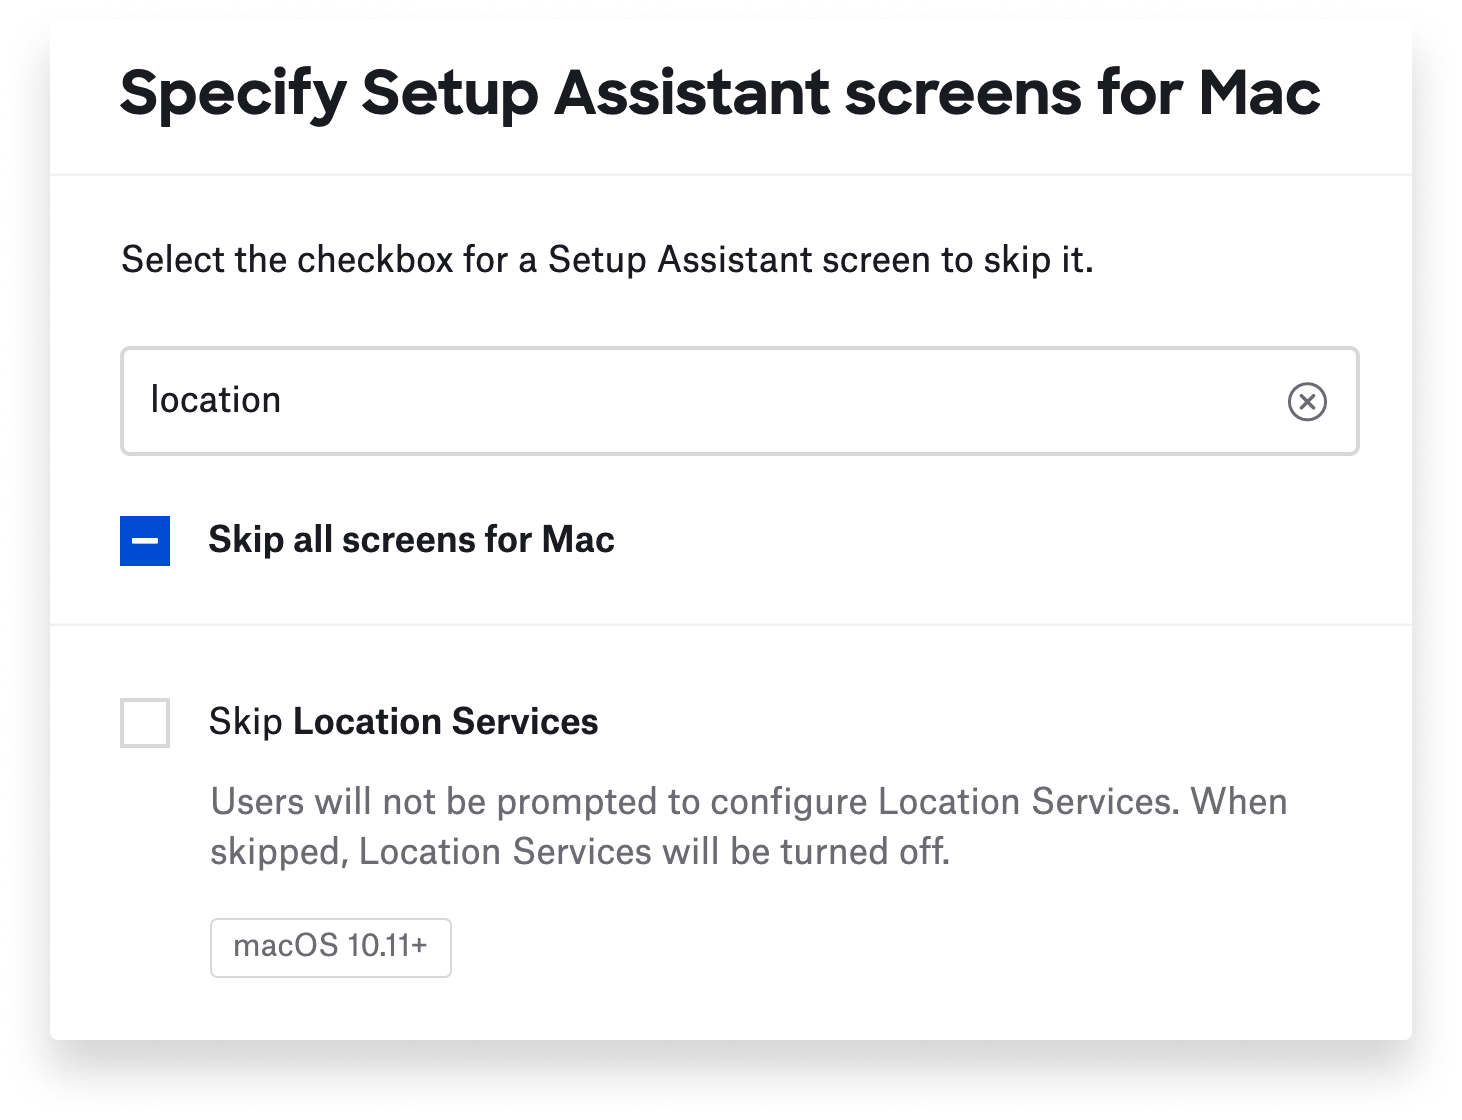 Searching for Setup Assistant screens to skip.